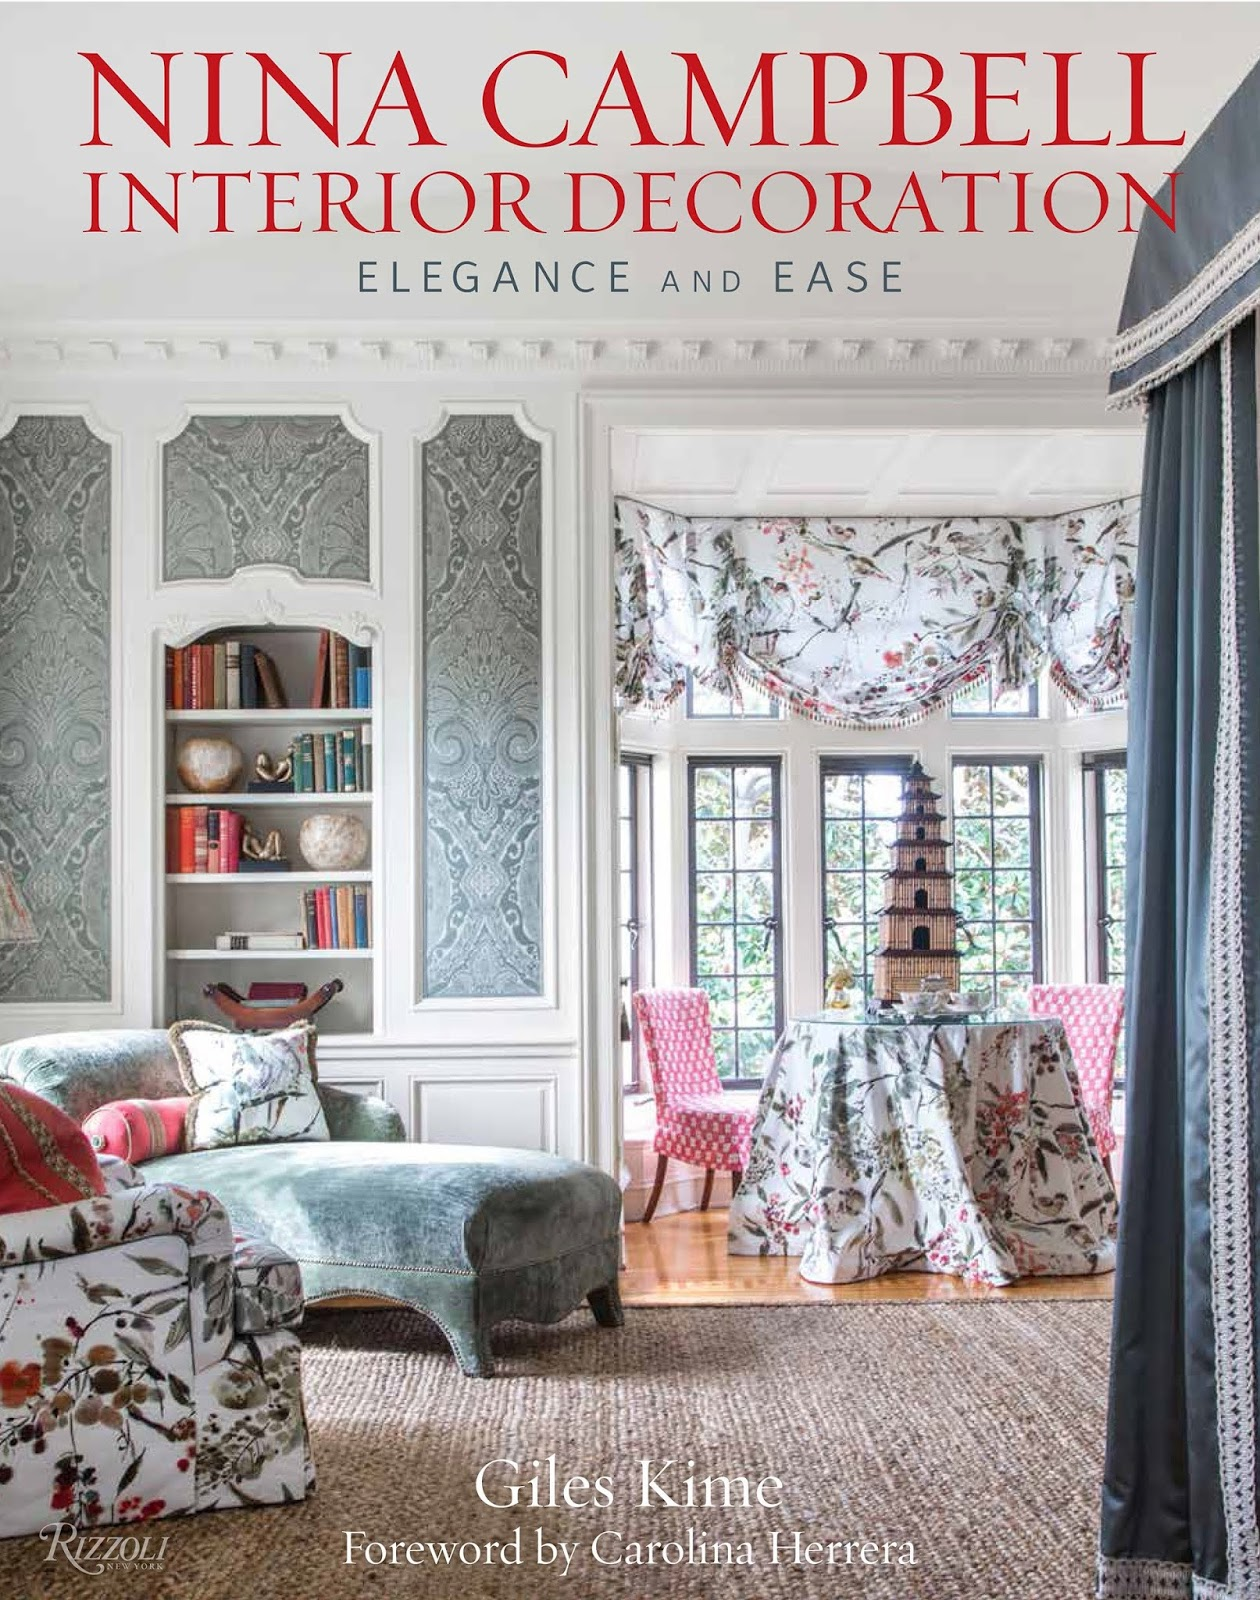 Her nearly fifty-year career in interior design has always exemplified the best of English interiors. Her work spans nine books and this one has to be ... & Color Outside the Lines: BOOK REVIEW: NINA CAMPBELL INTERIOR ...